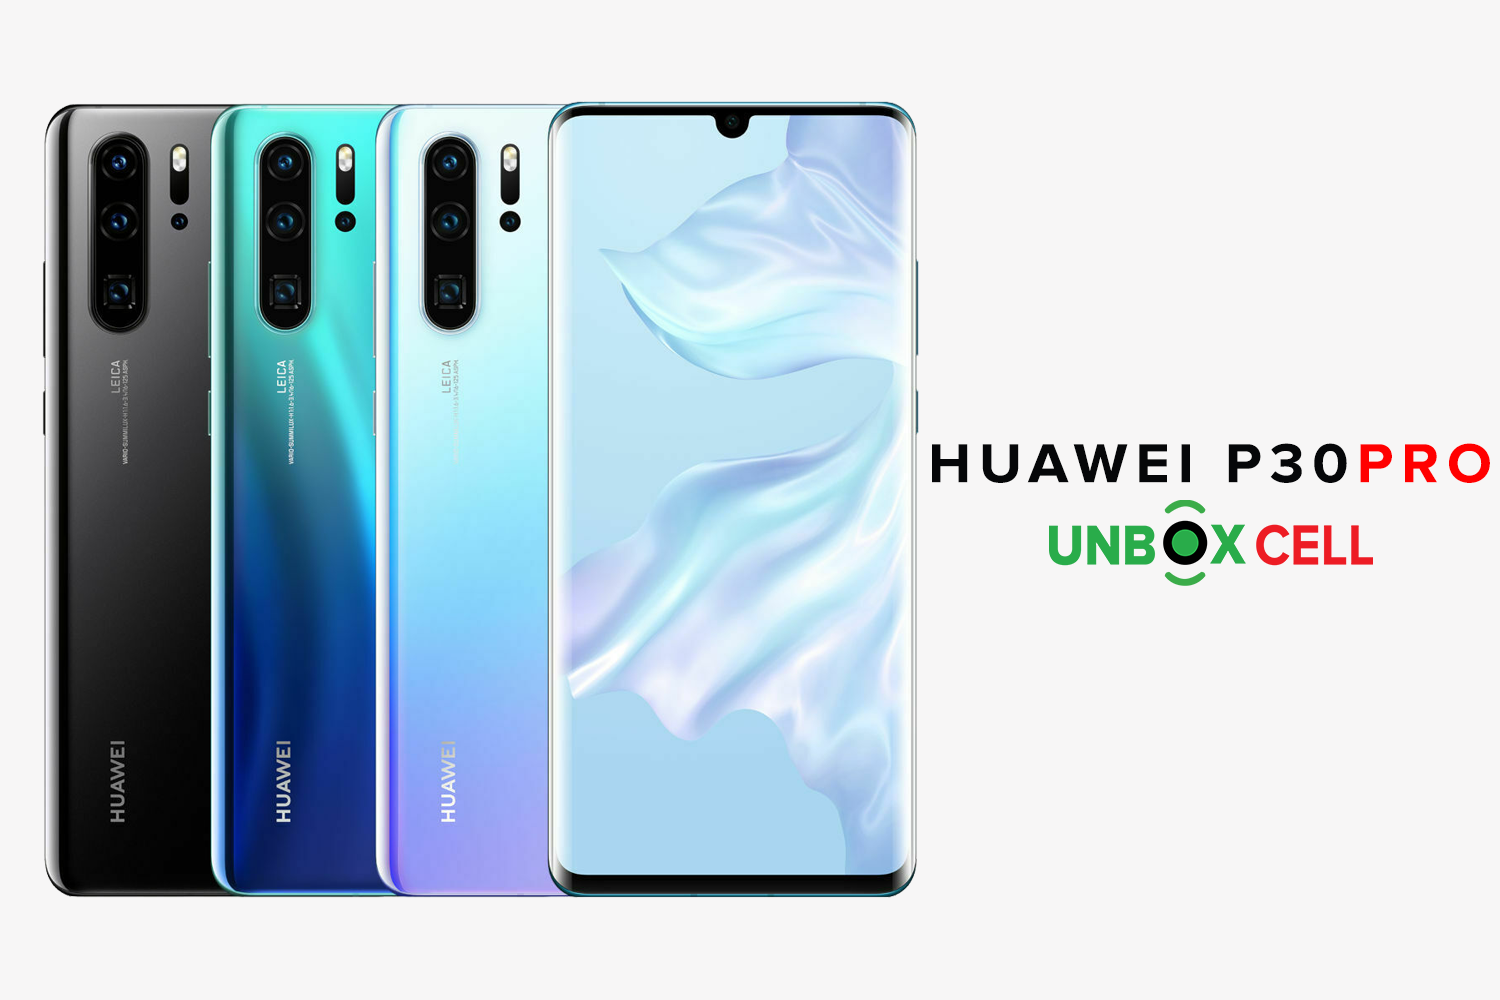 Huawei P30 Pro: Unbox Cell